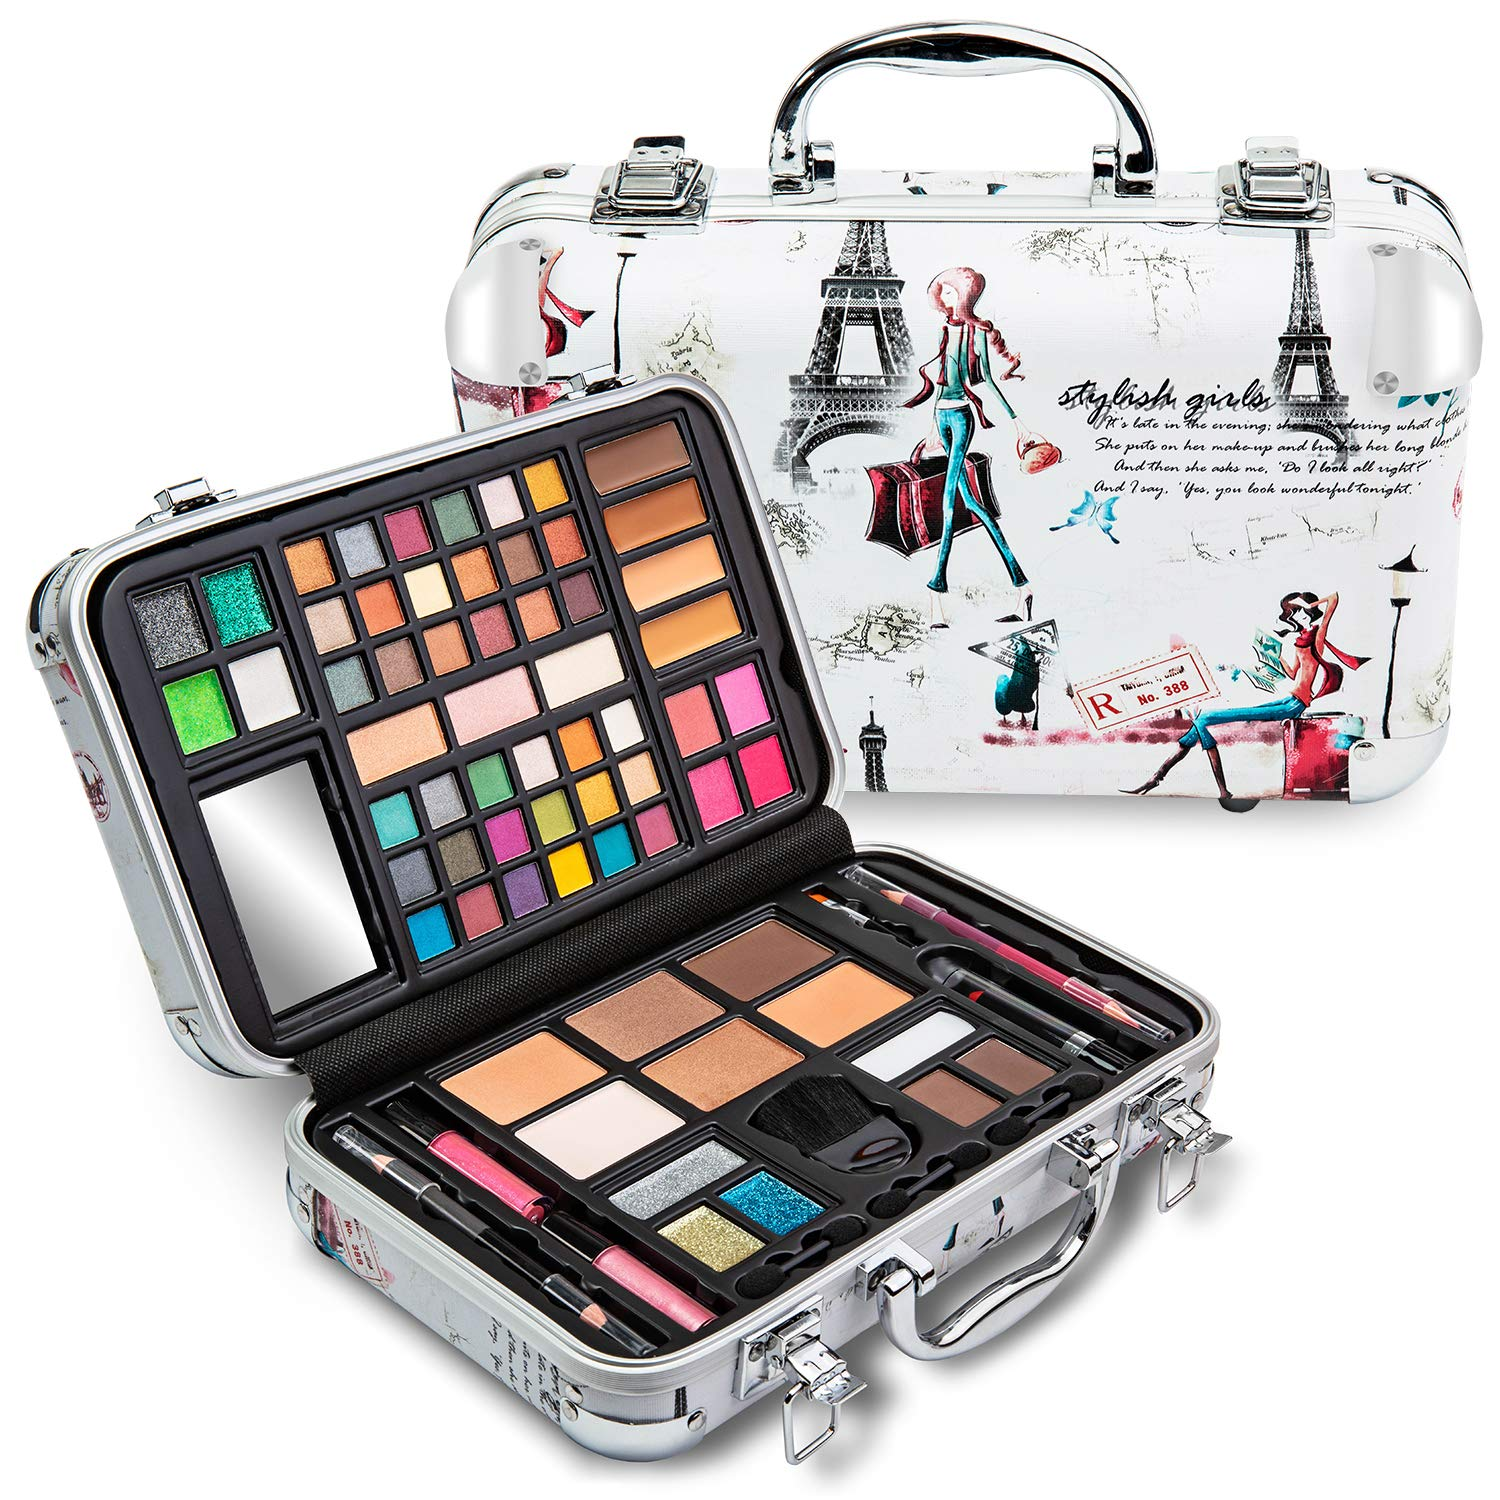 Vokai Makeup Kit Gift Set - Paris Travel Case 41 Eye Shadows 4 Blushes 5 Bronzers 7 Body Glitters 1 Lip Liner Pencil 1 Eye Liner Pencil 2 Lip Gloss Wands 1 Lipstick 5 Concealers 1 Brow Wax 1 Mirror